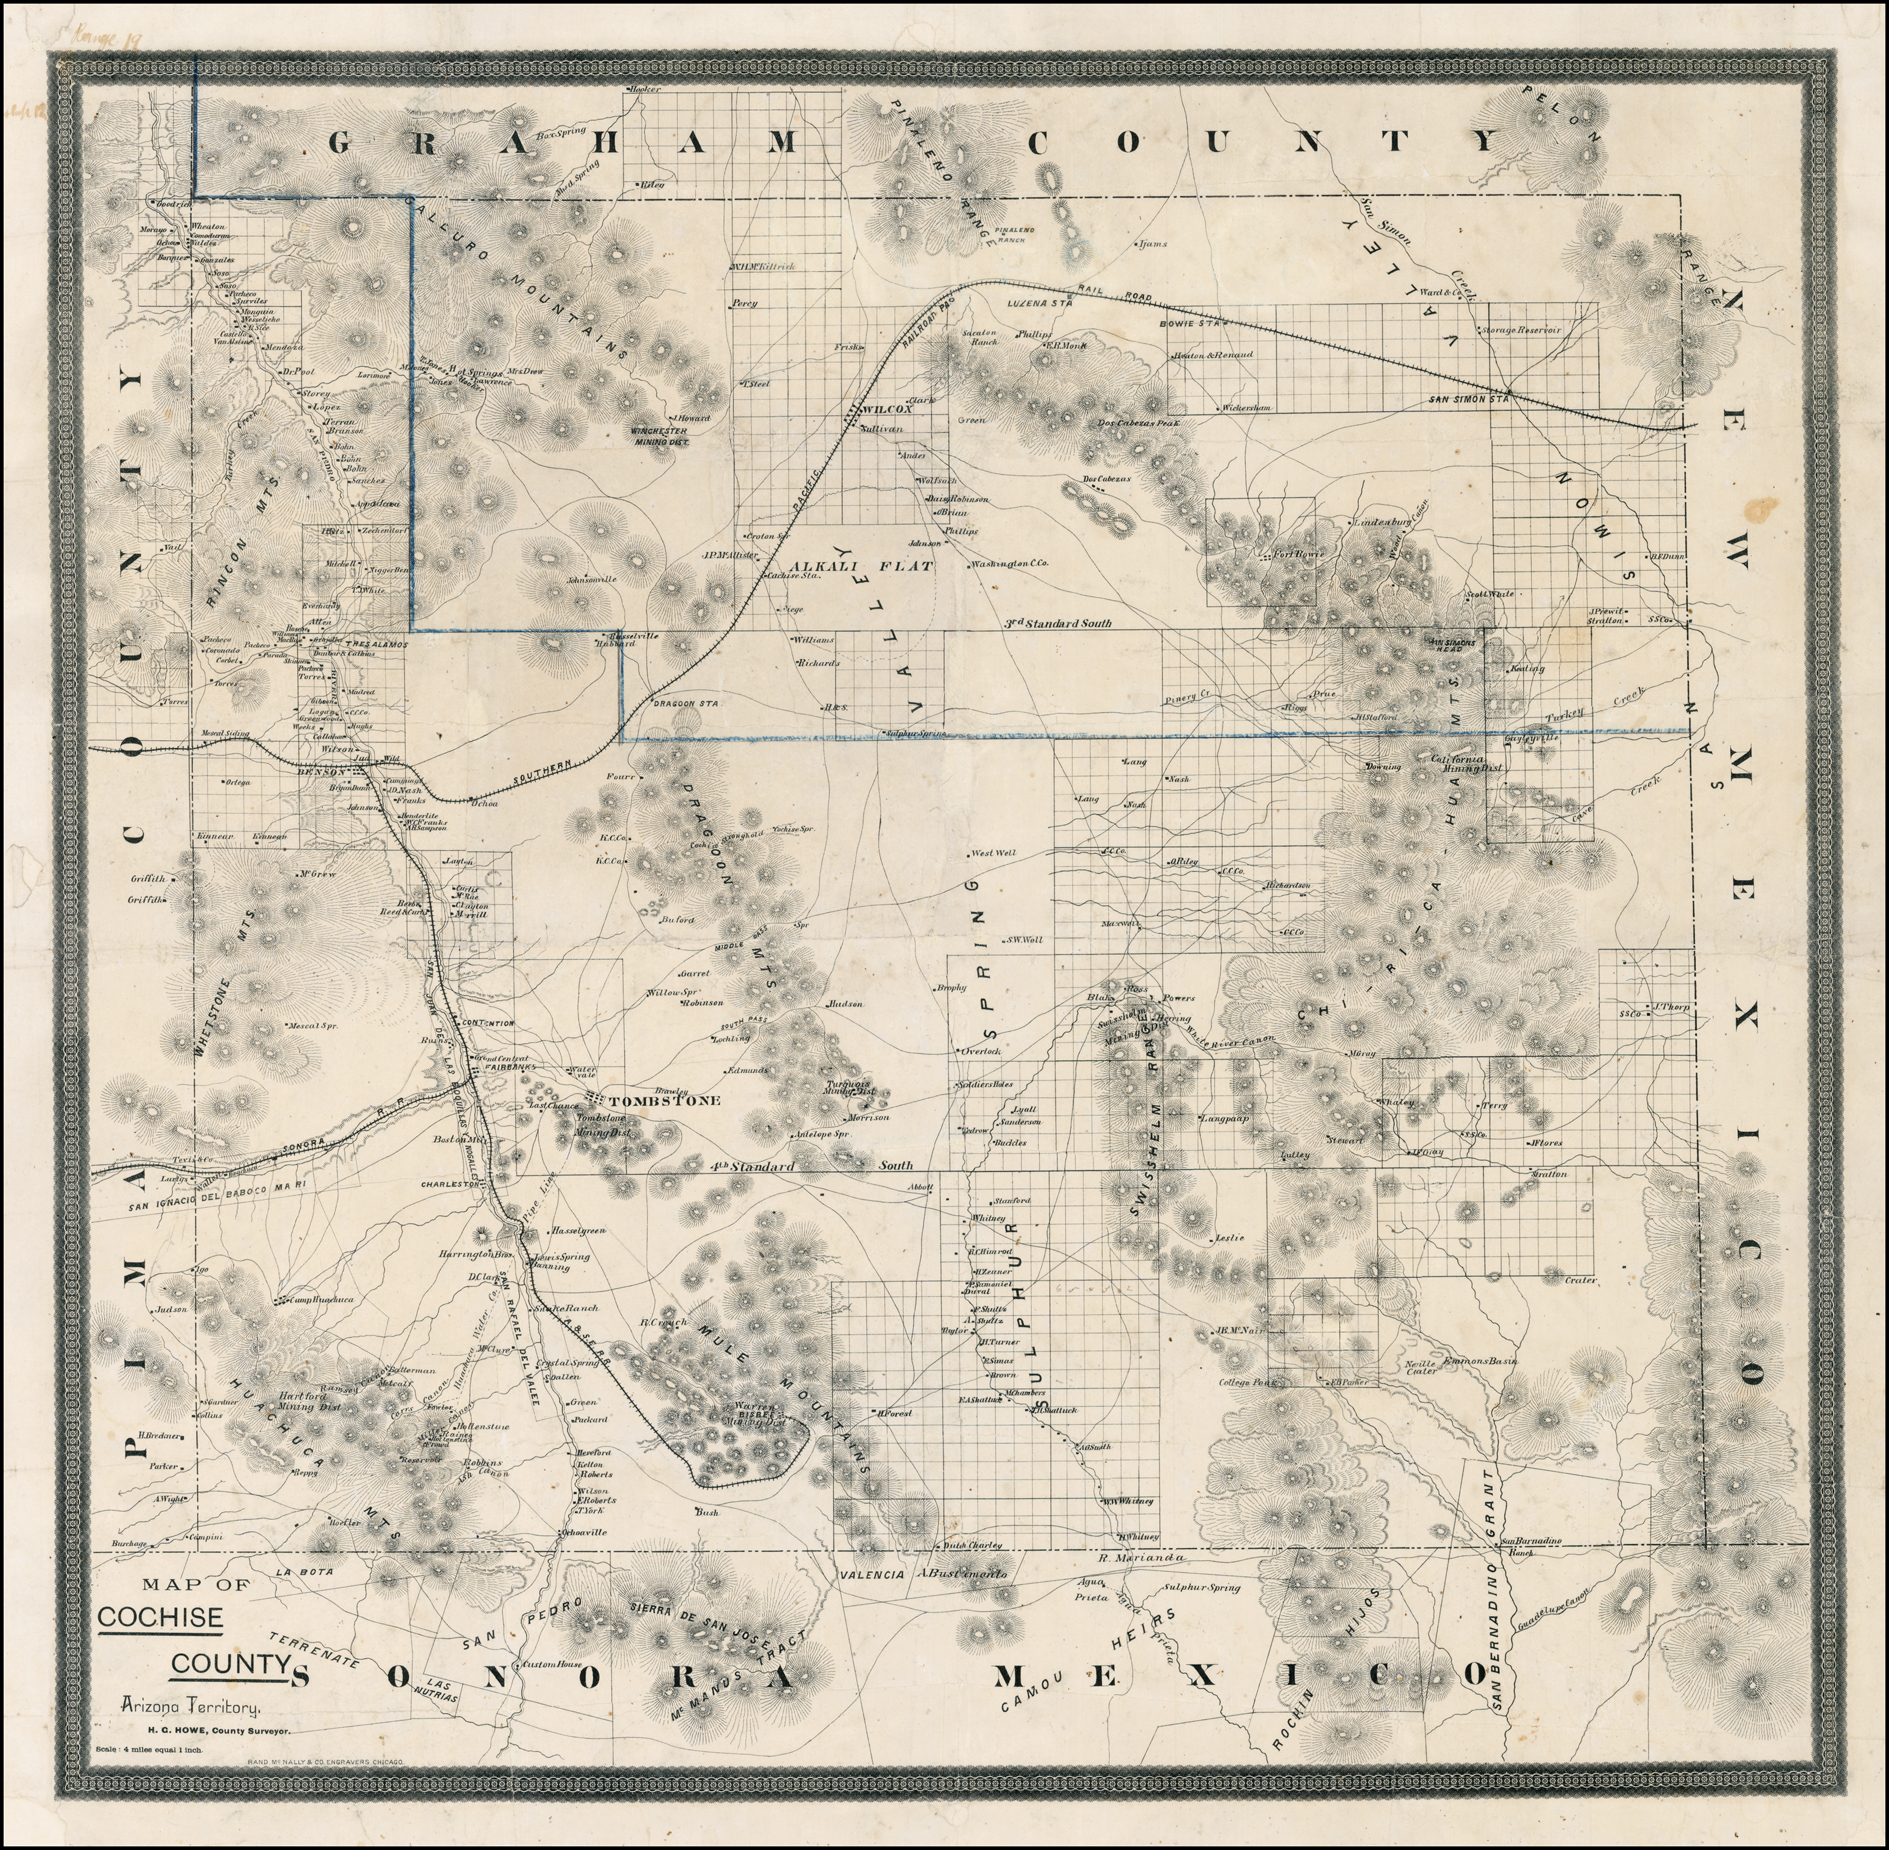 Map of Cochise County Arizona Territory - Barry Lawrence